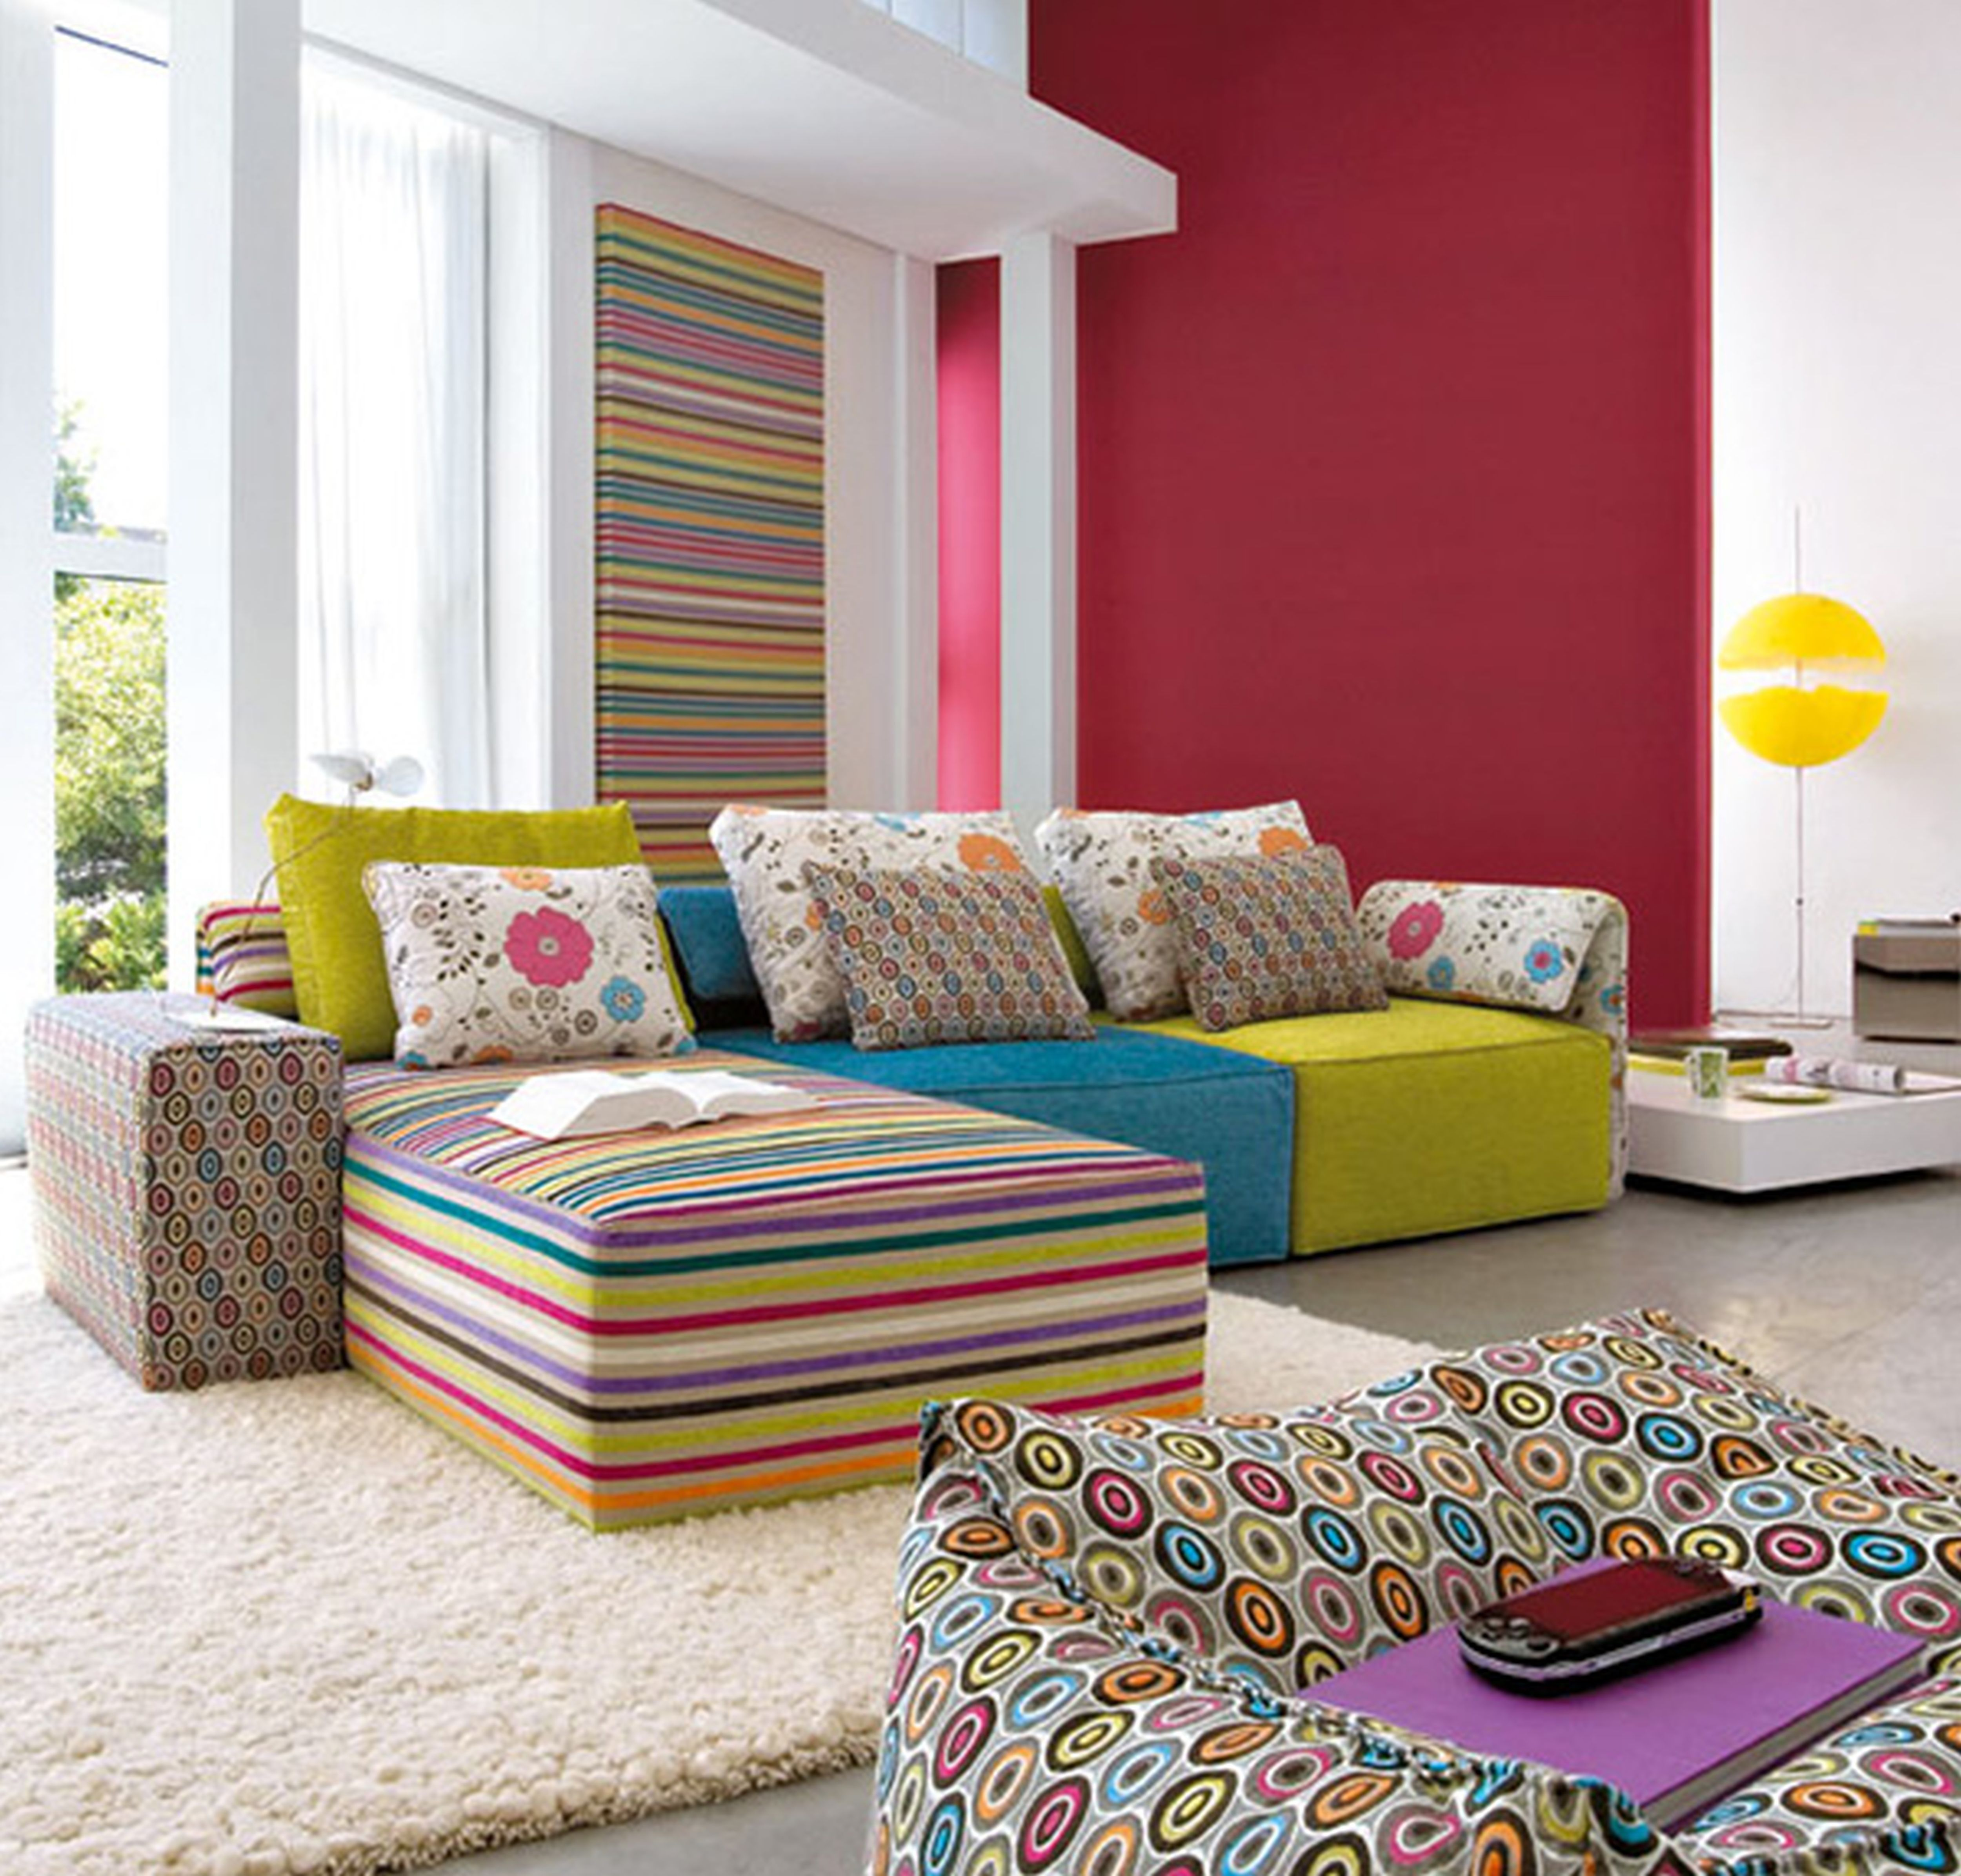 Home decor trends 2013 home decorating ideas bright and bold - For Anyone Who Is Thinking Of Re Decorating Your Home You Might Be Possibly